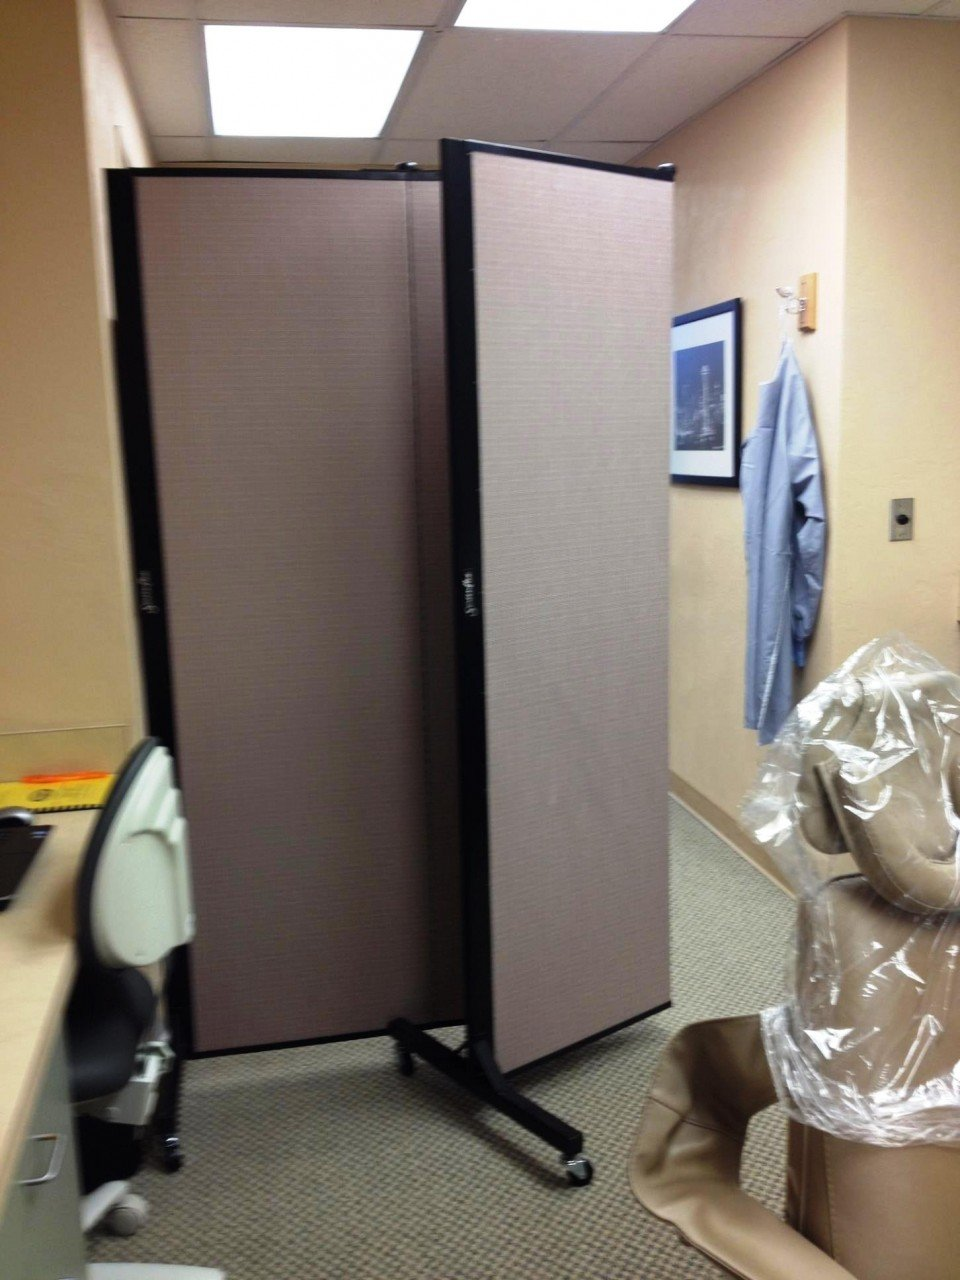 A room divider creating a private dental exam room